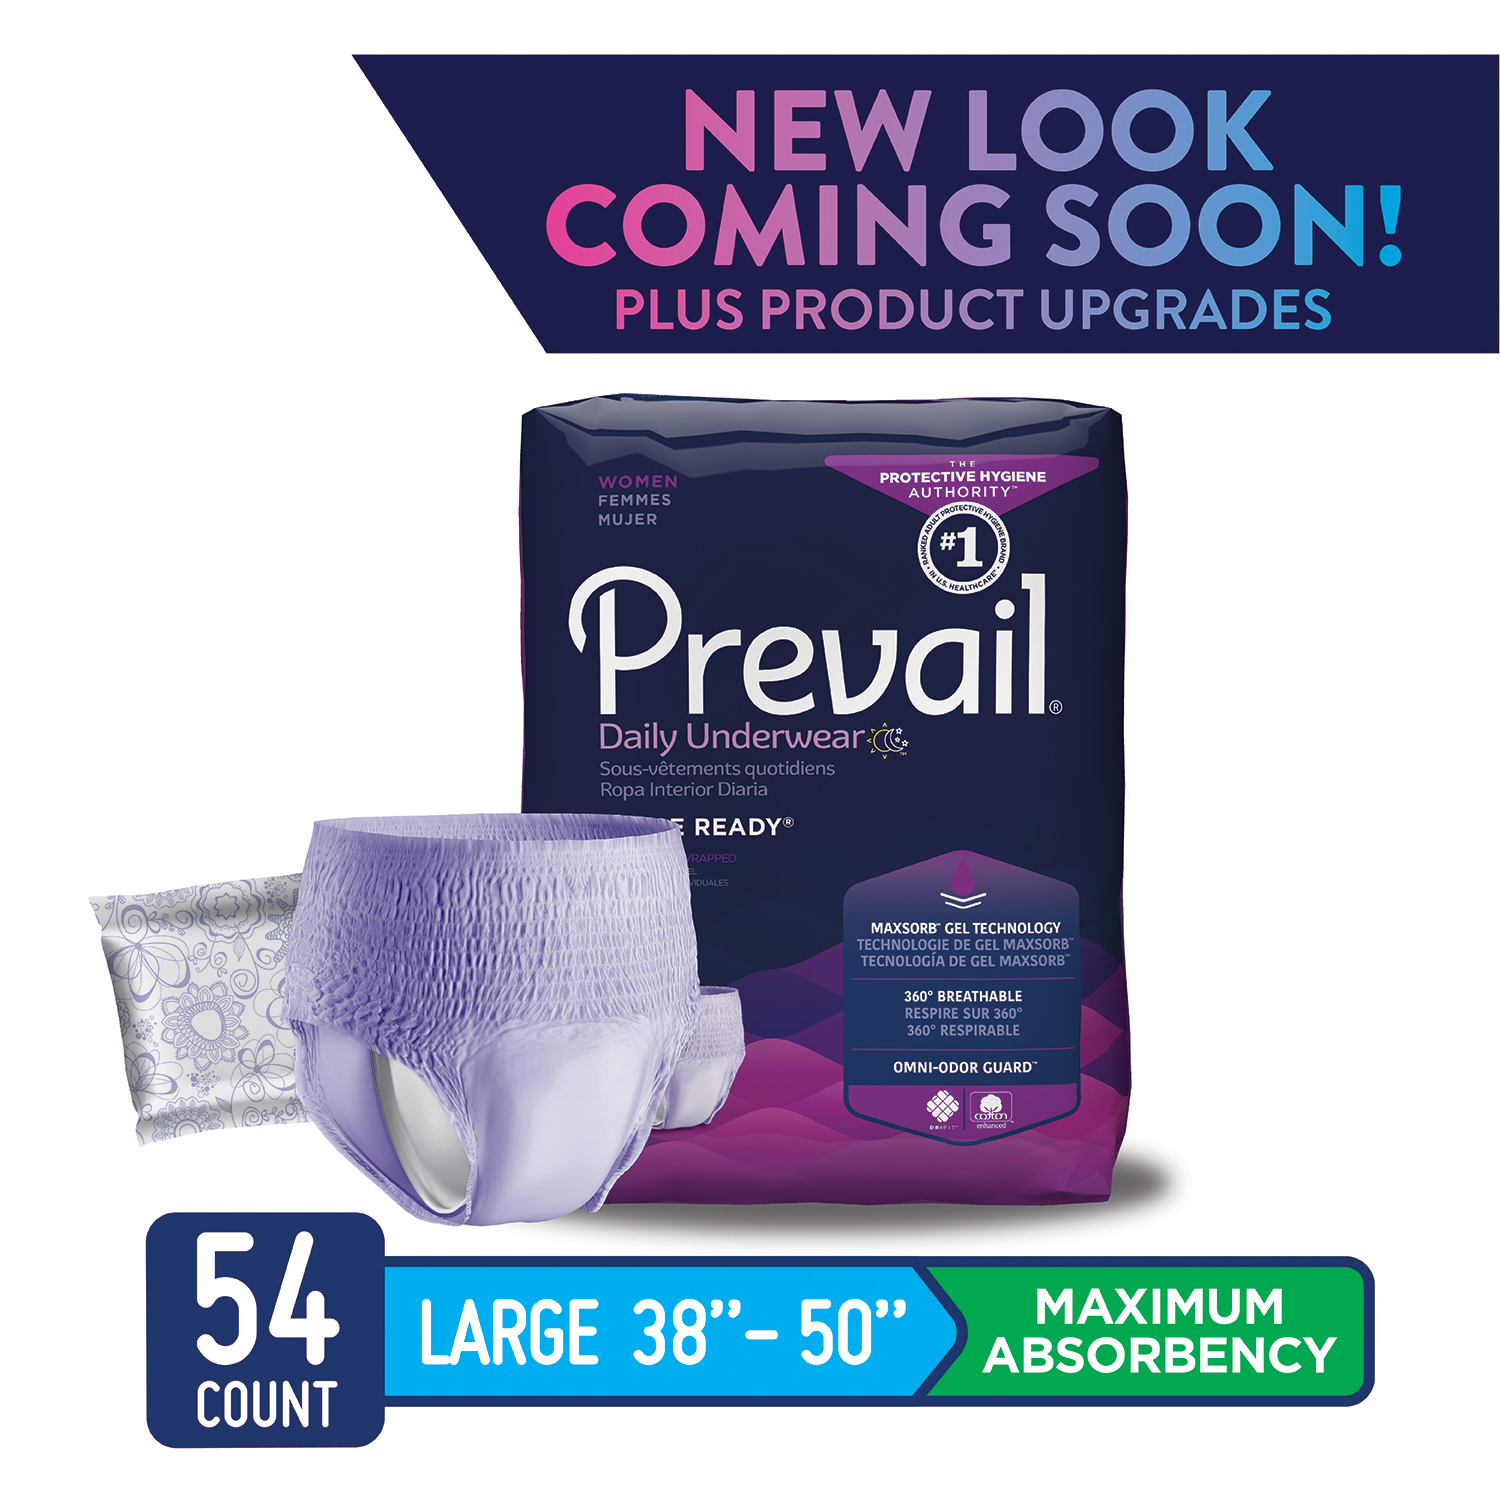 Prevail Maximum Absorbency Incontinence Underwear for Women, Large, 54 Count